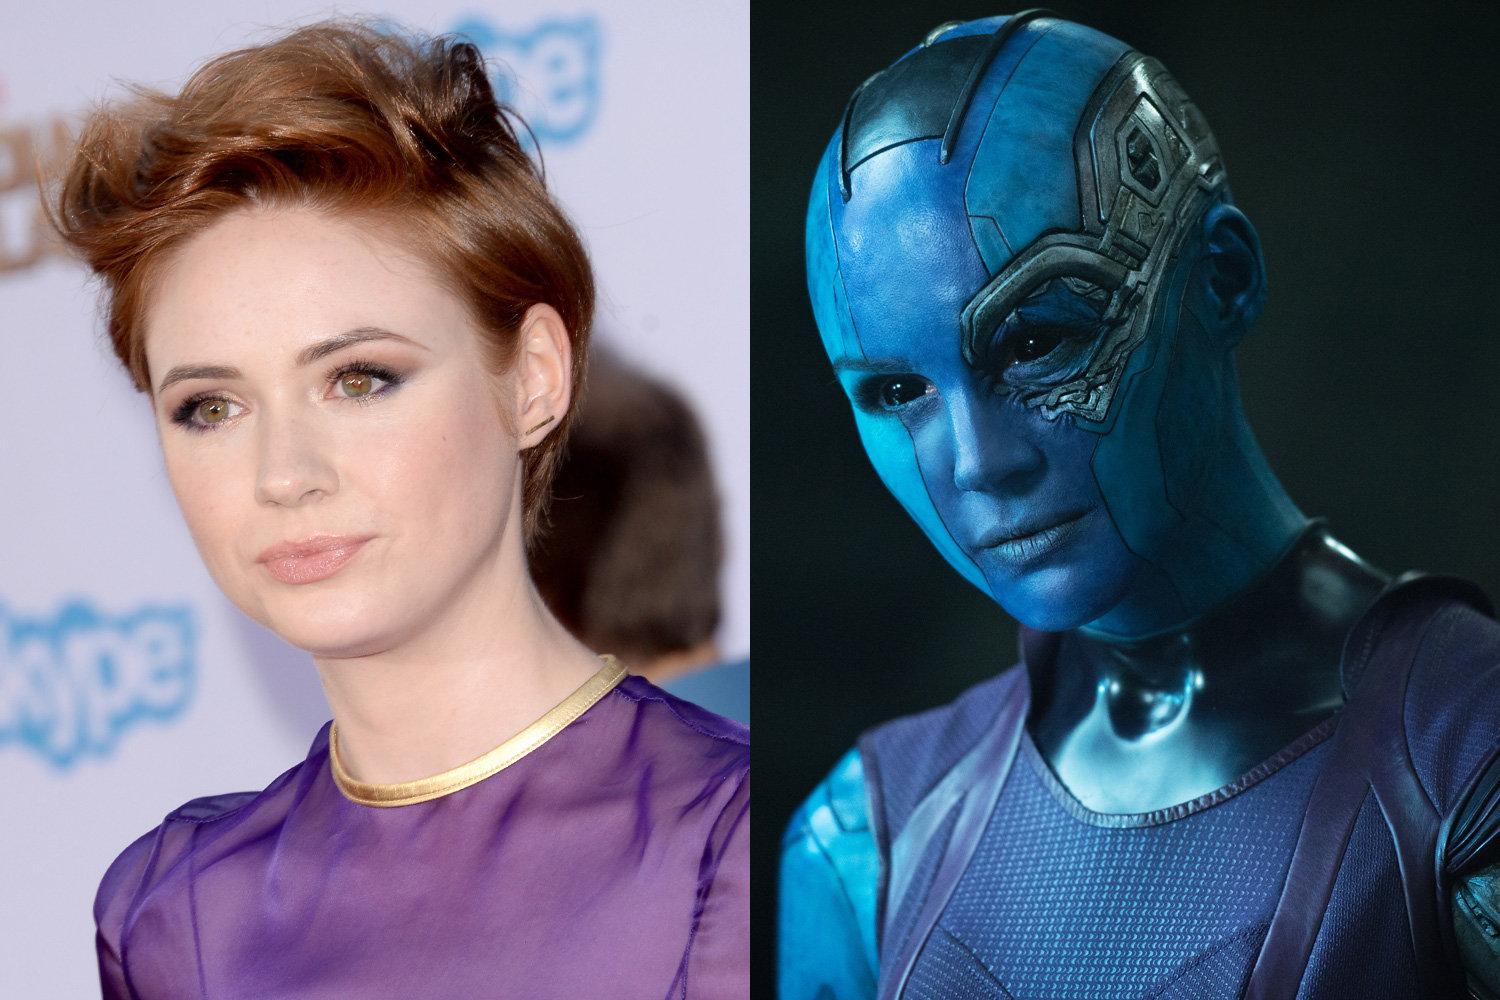 Karen Gillan had to shave off all her hair to attain the sleek look of Nebula, a cybernetically enhanced alien.